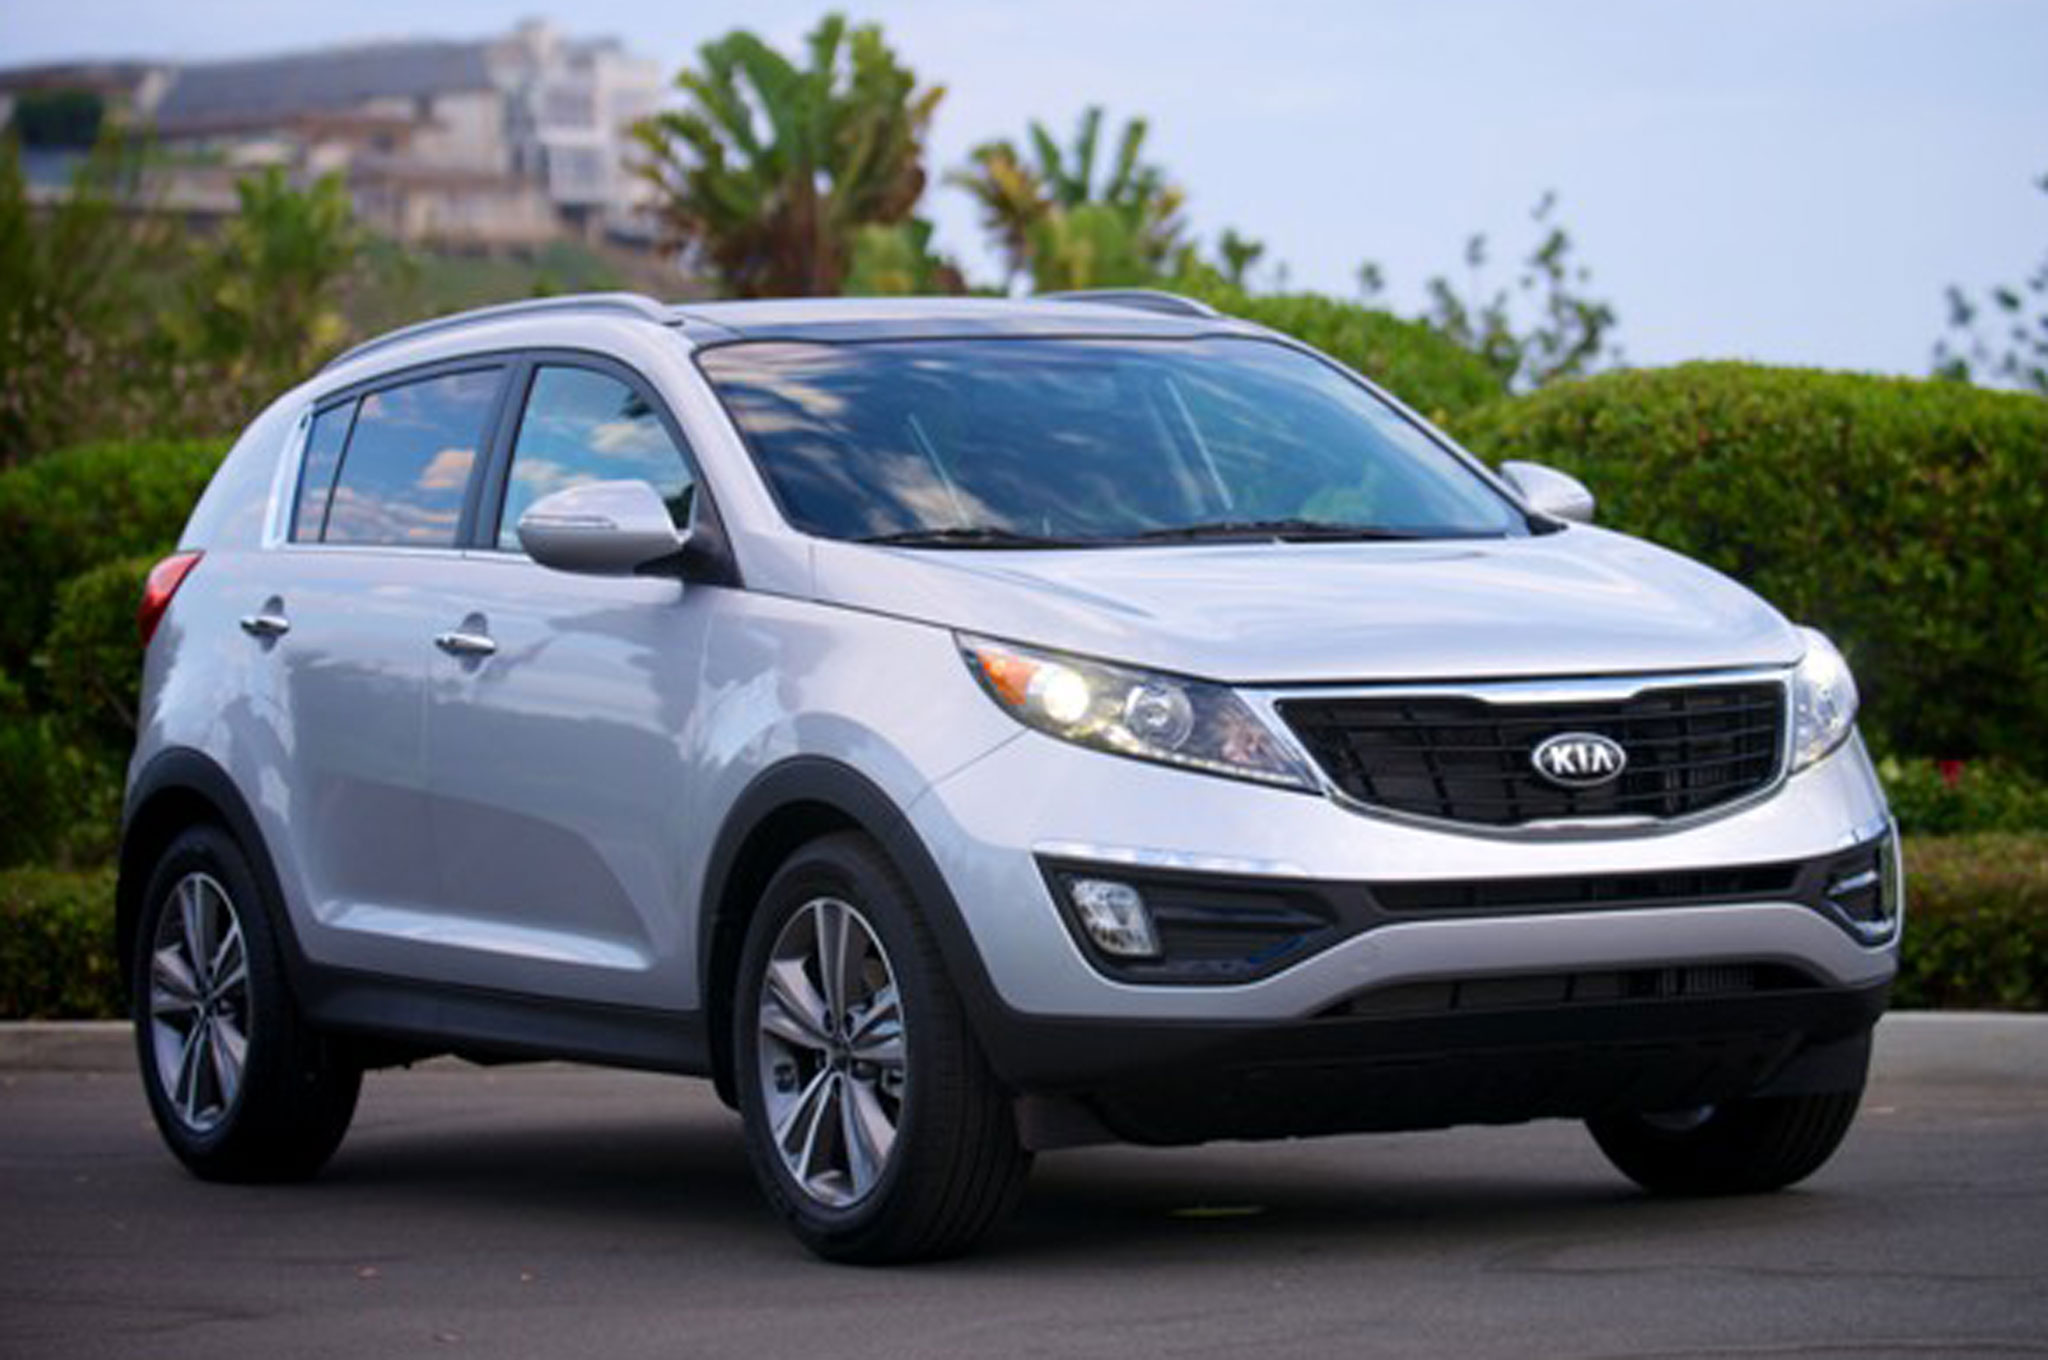 2014 Kia Sportage Front Right Side1